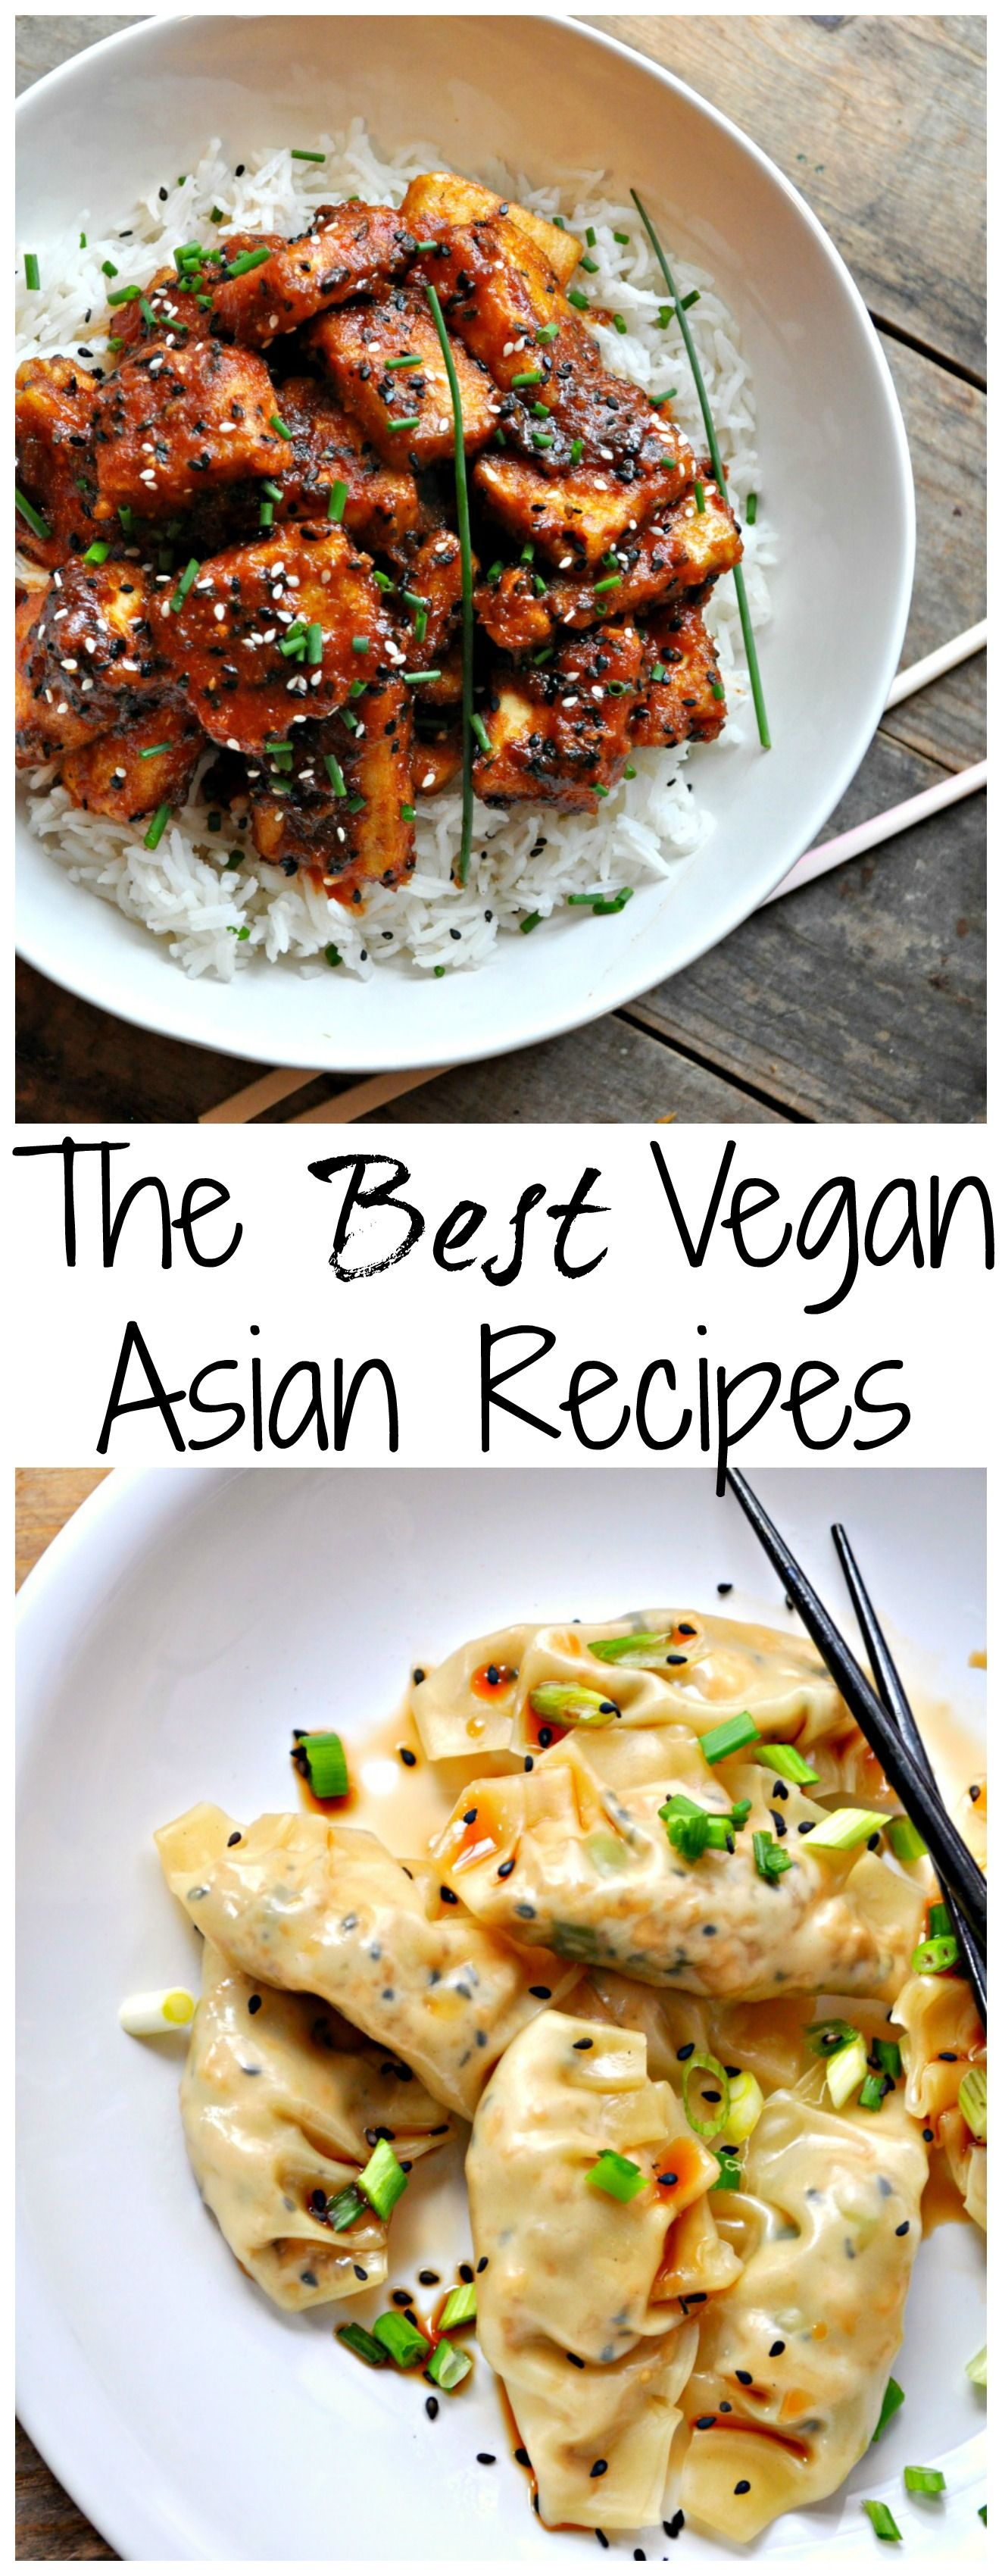 The Best Vegan Asian Recipes images